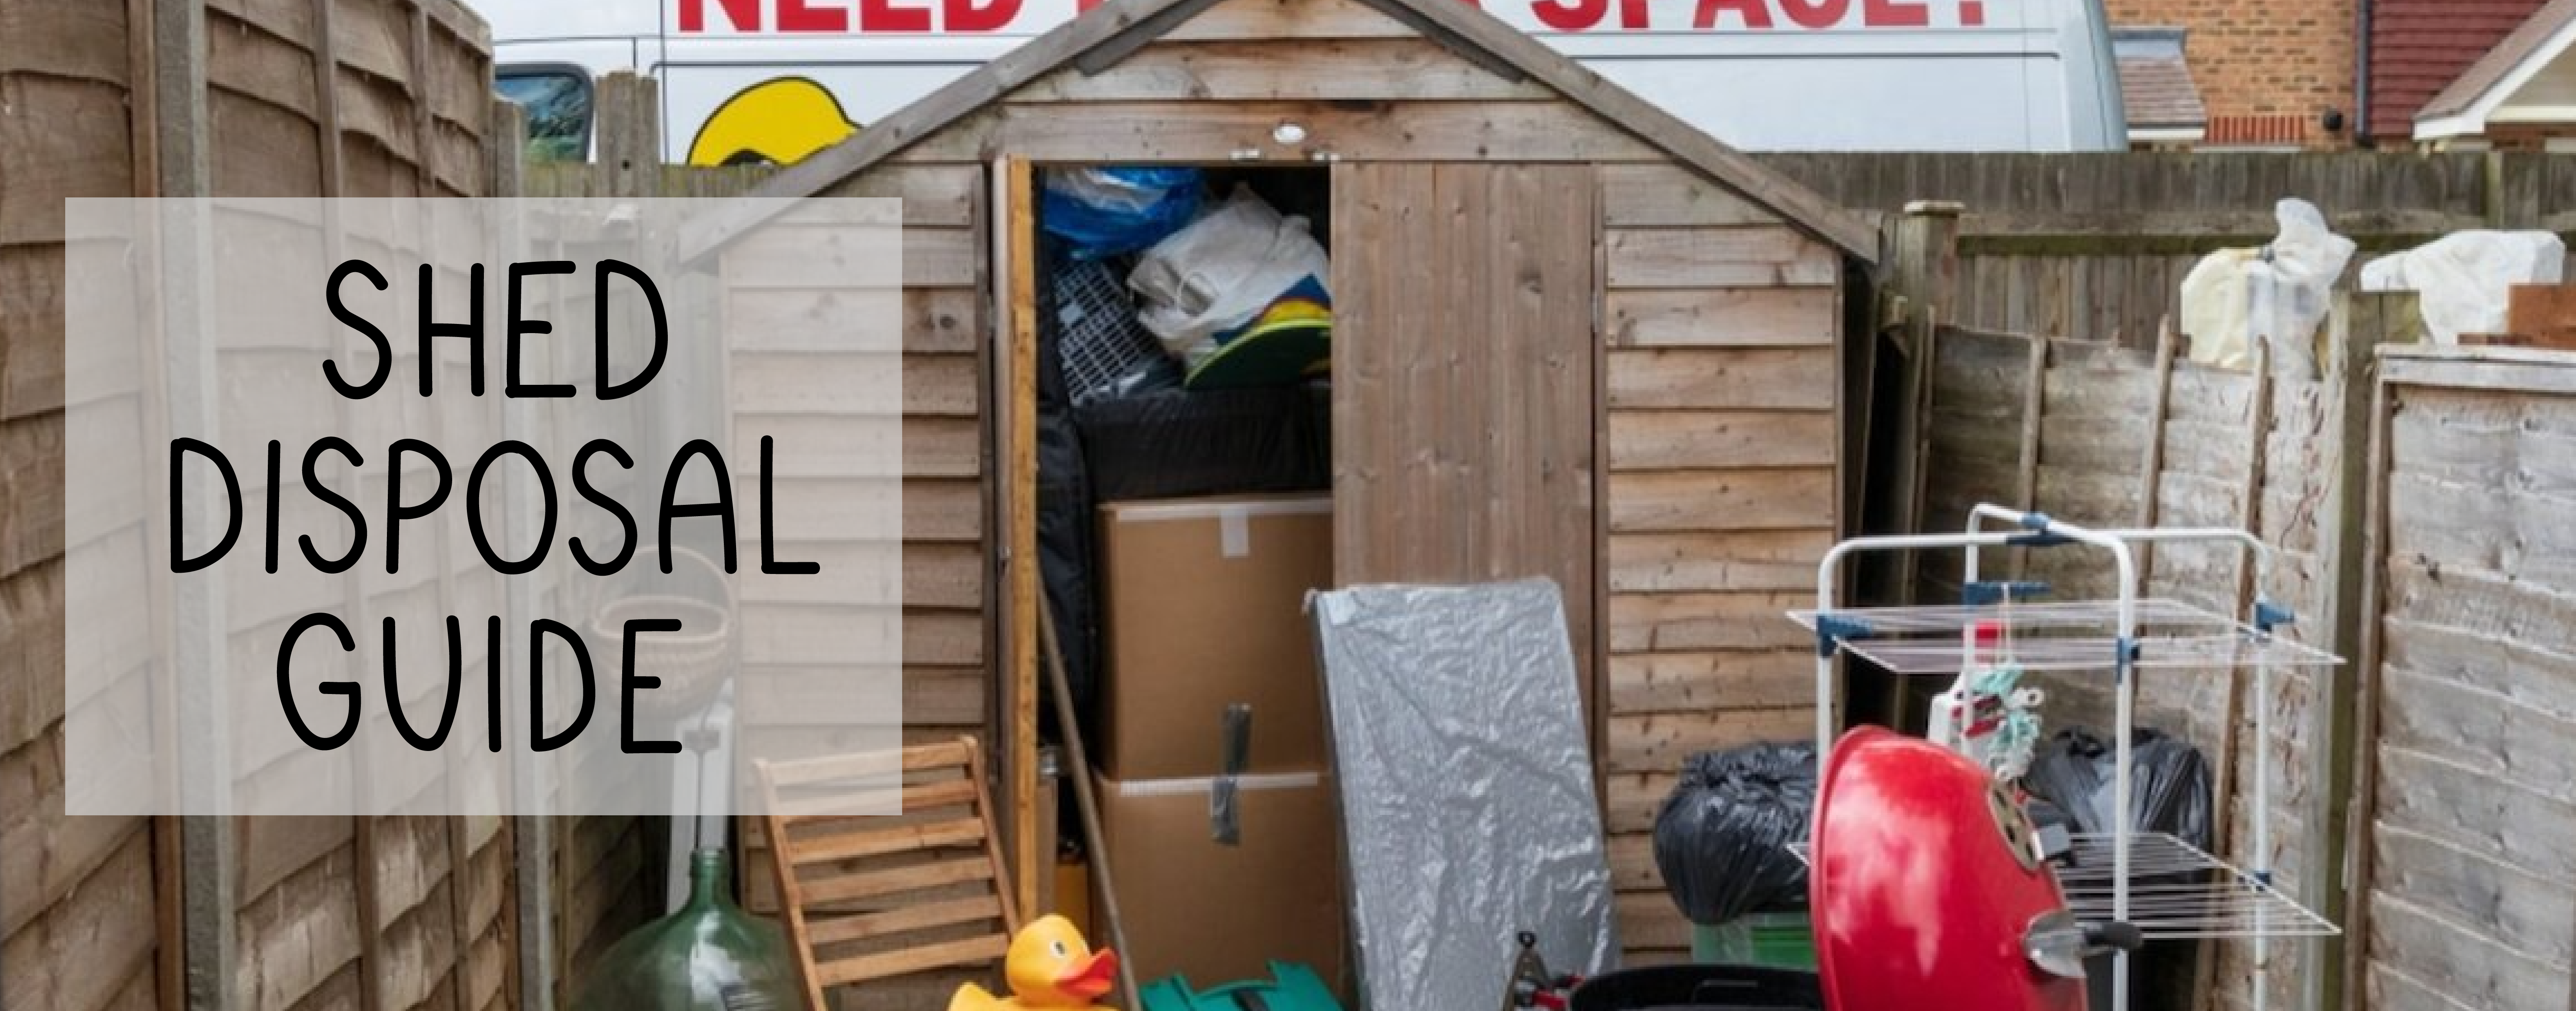 how to dispose of old shed in garden